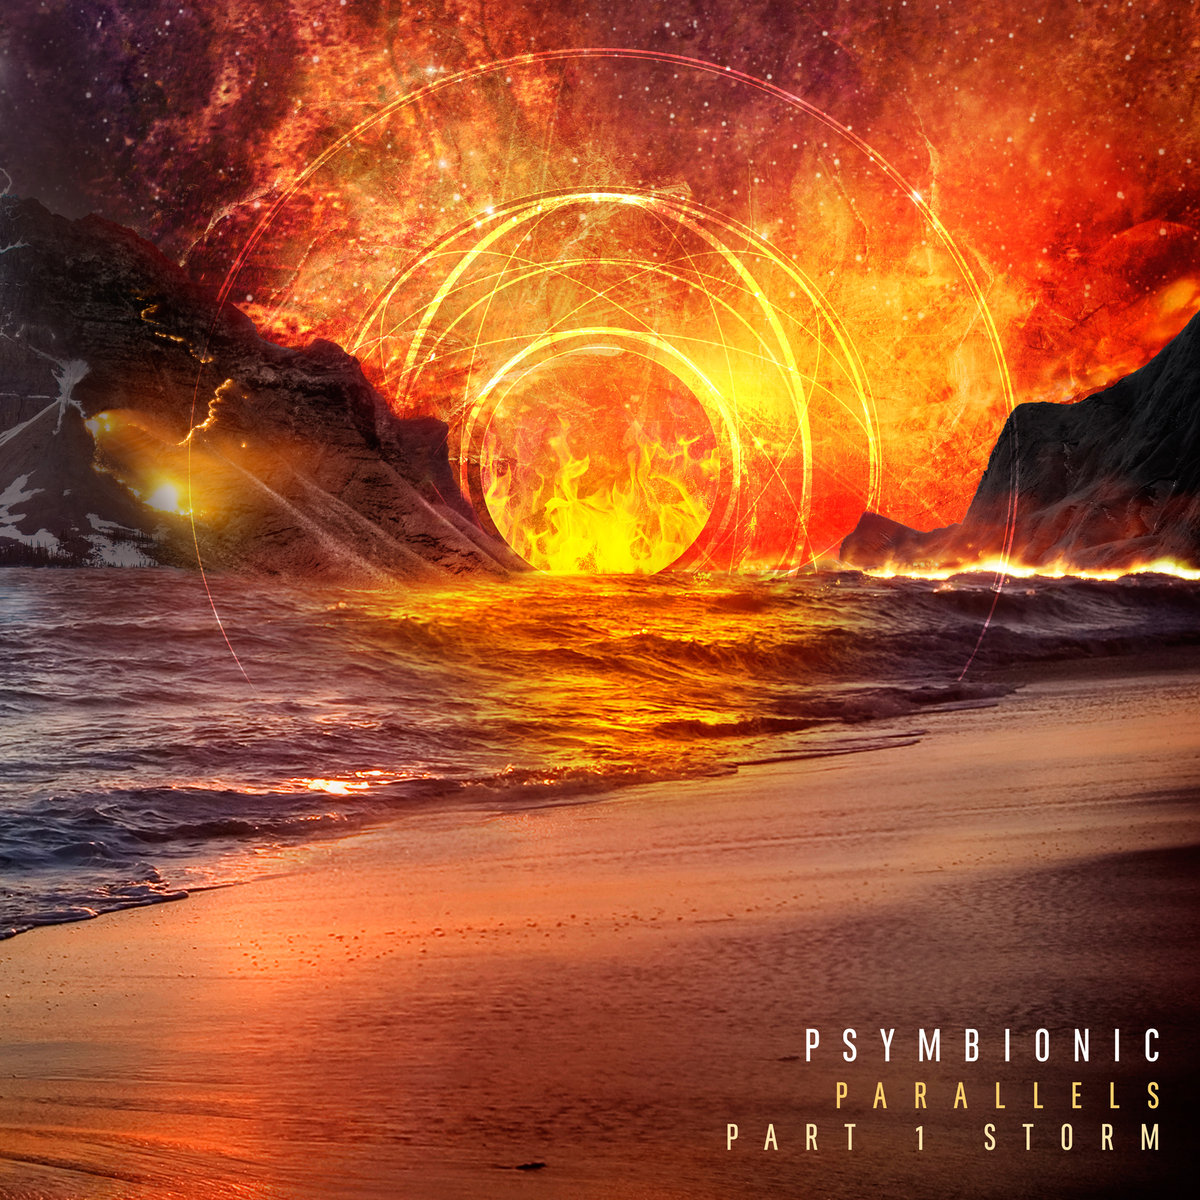 Psymbionic - Parallels (Part 1: Storm) (artwork)